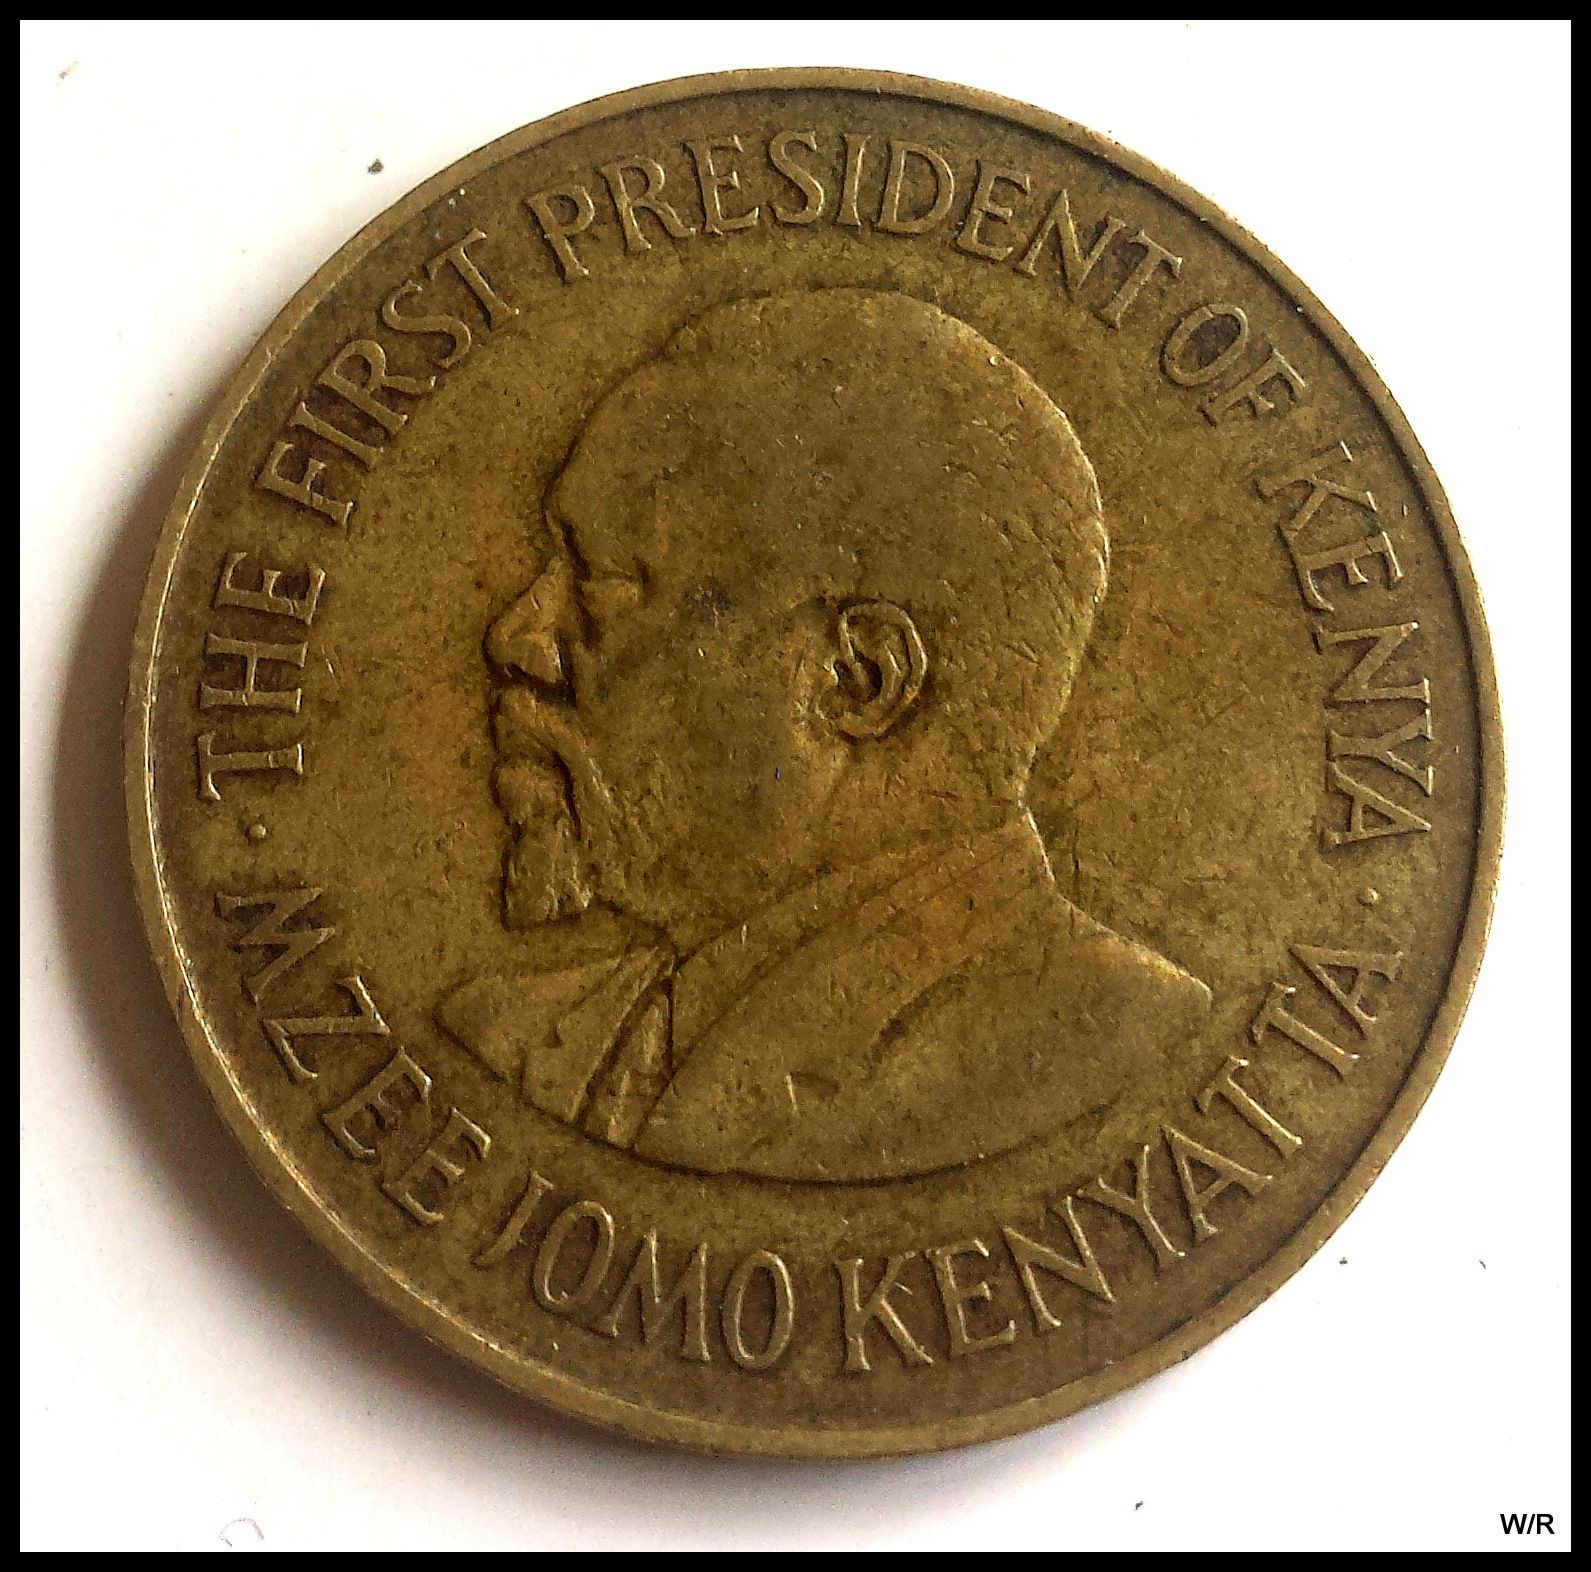 1970 Kenya 10 cent bronze coin - for sale, buy now online - Item #165079